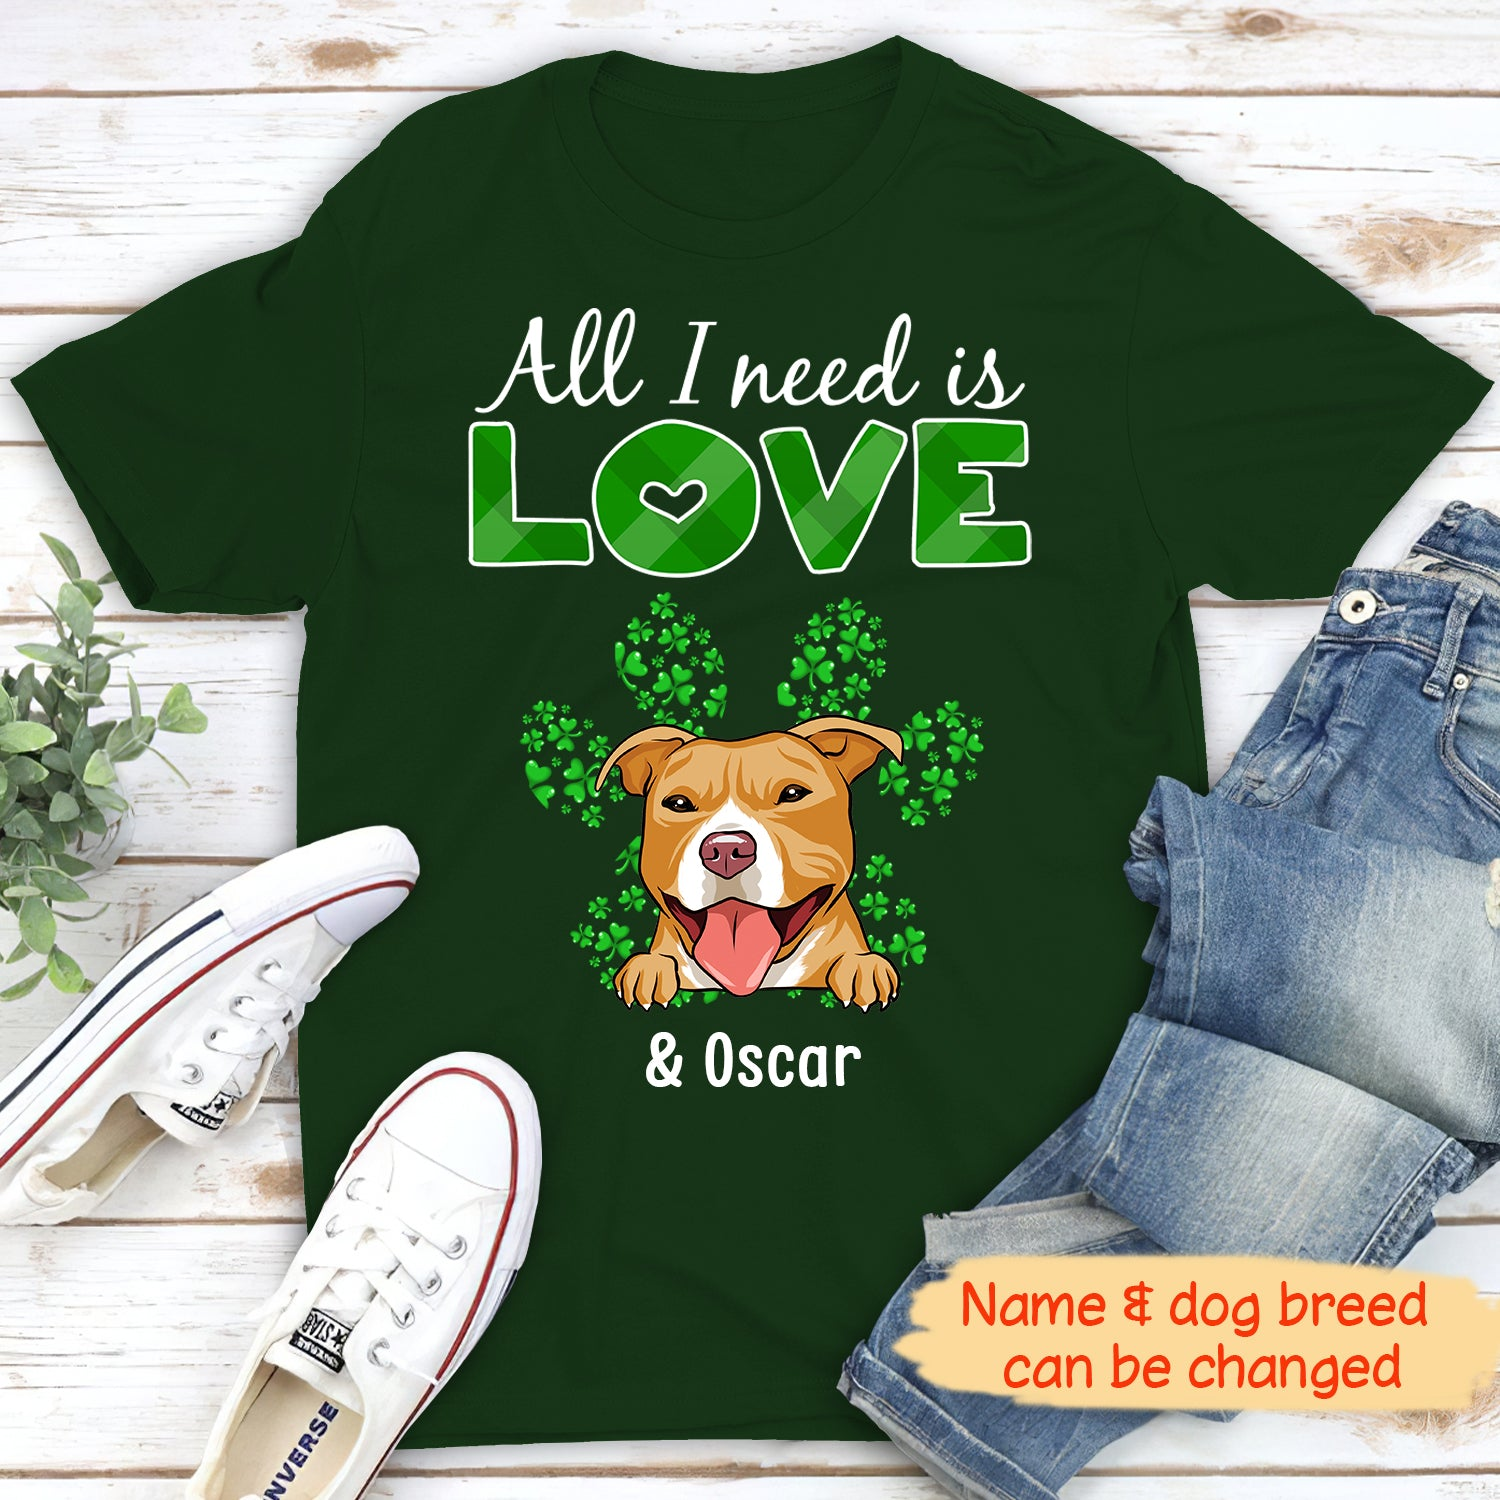 All I need (Saint Patrick) - Personalized Custom Unisex T-shirt